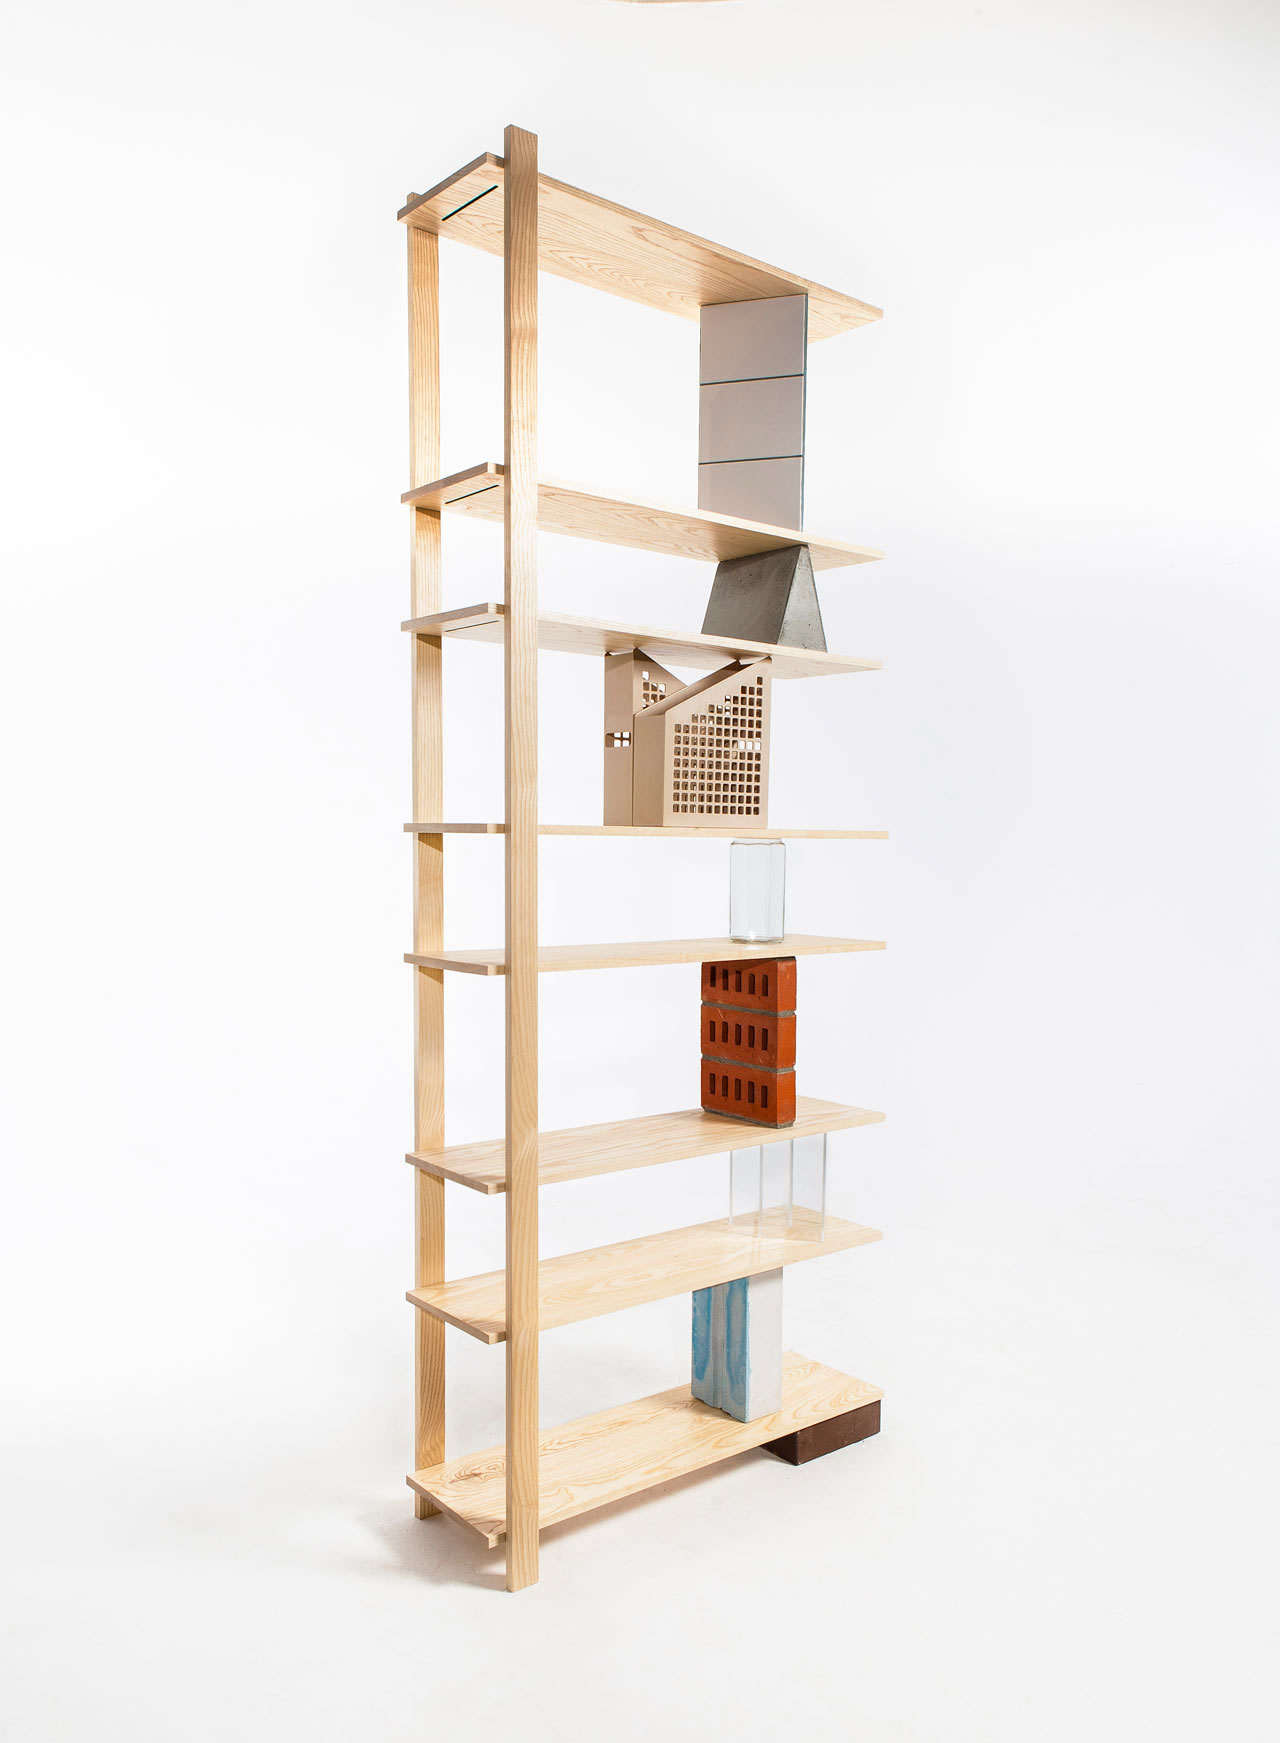 Stacked Objects by Emiel Remmelts IMM Cologne | Yellowtrace